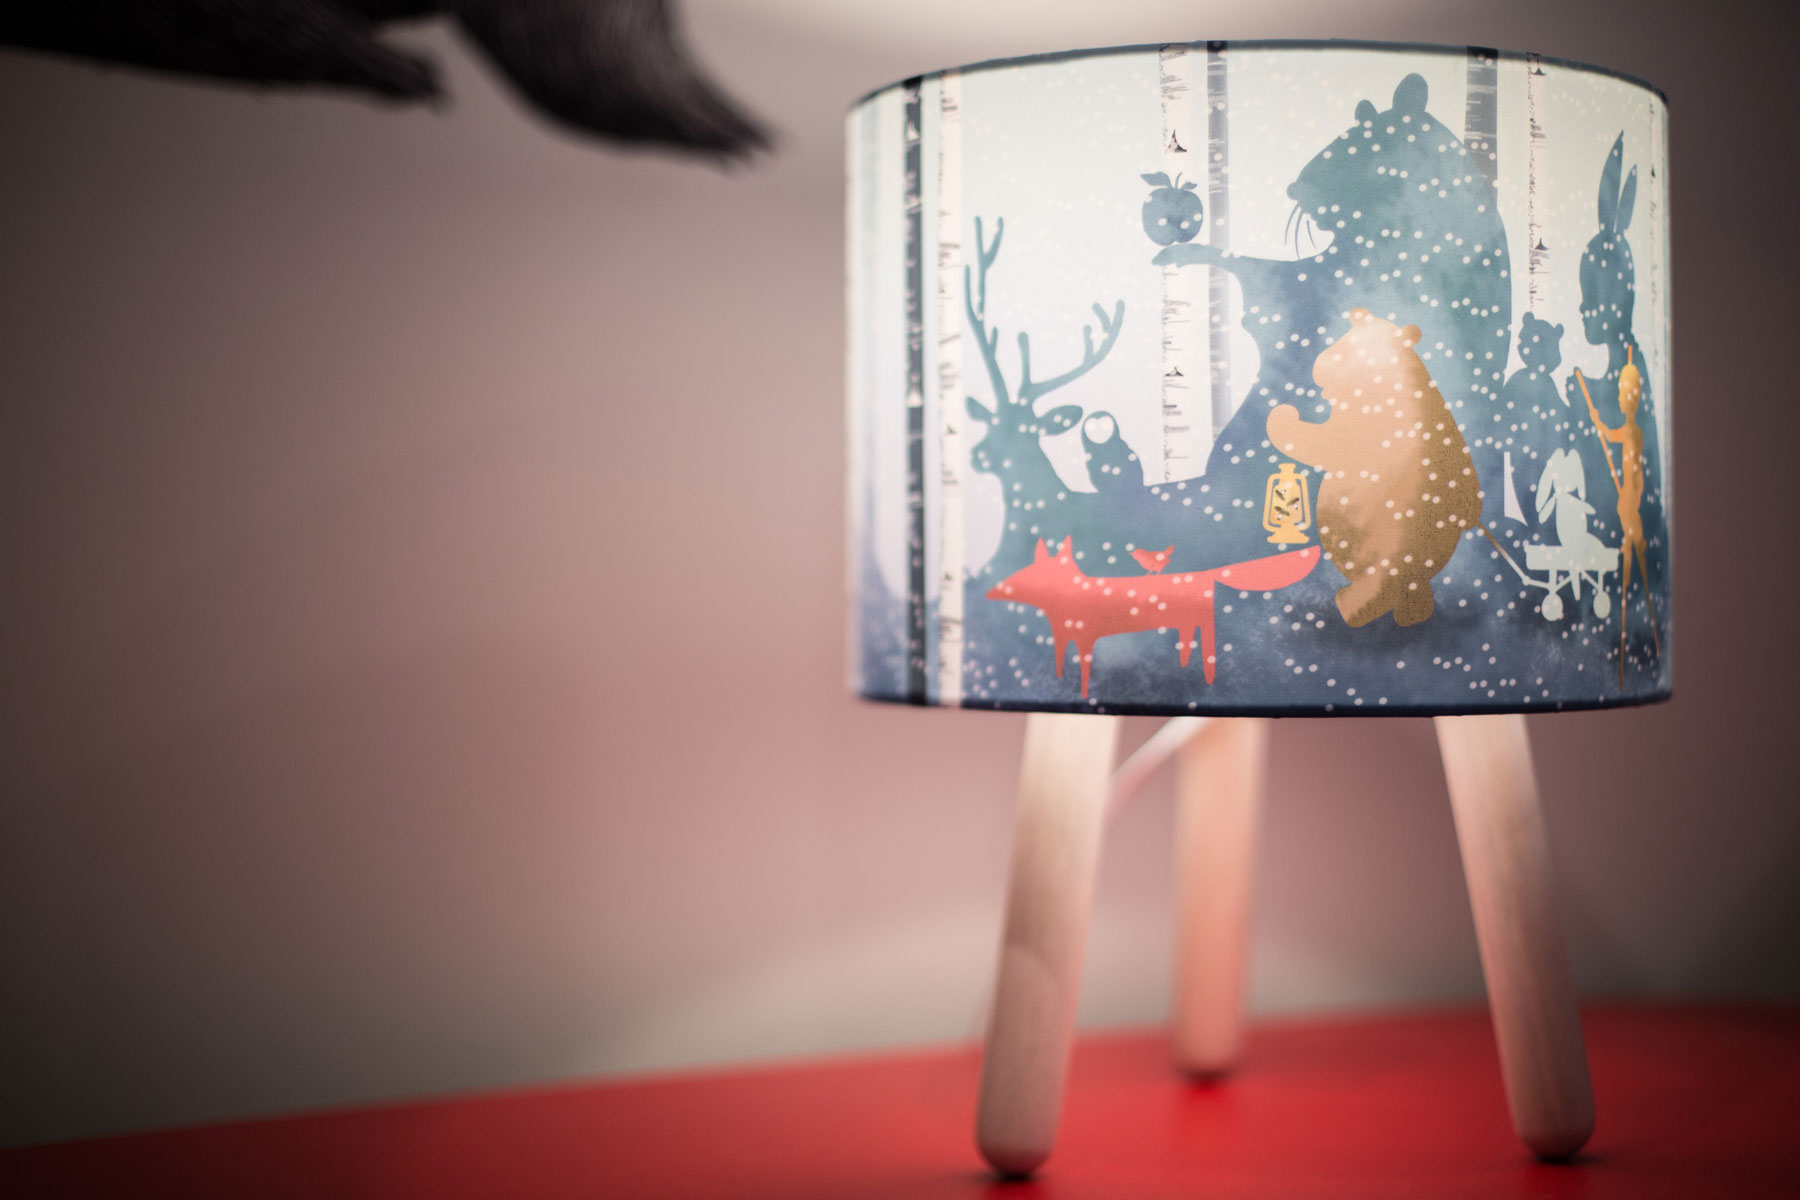 Corinna forest lamp - after